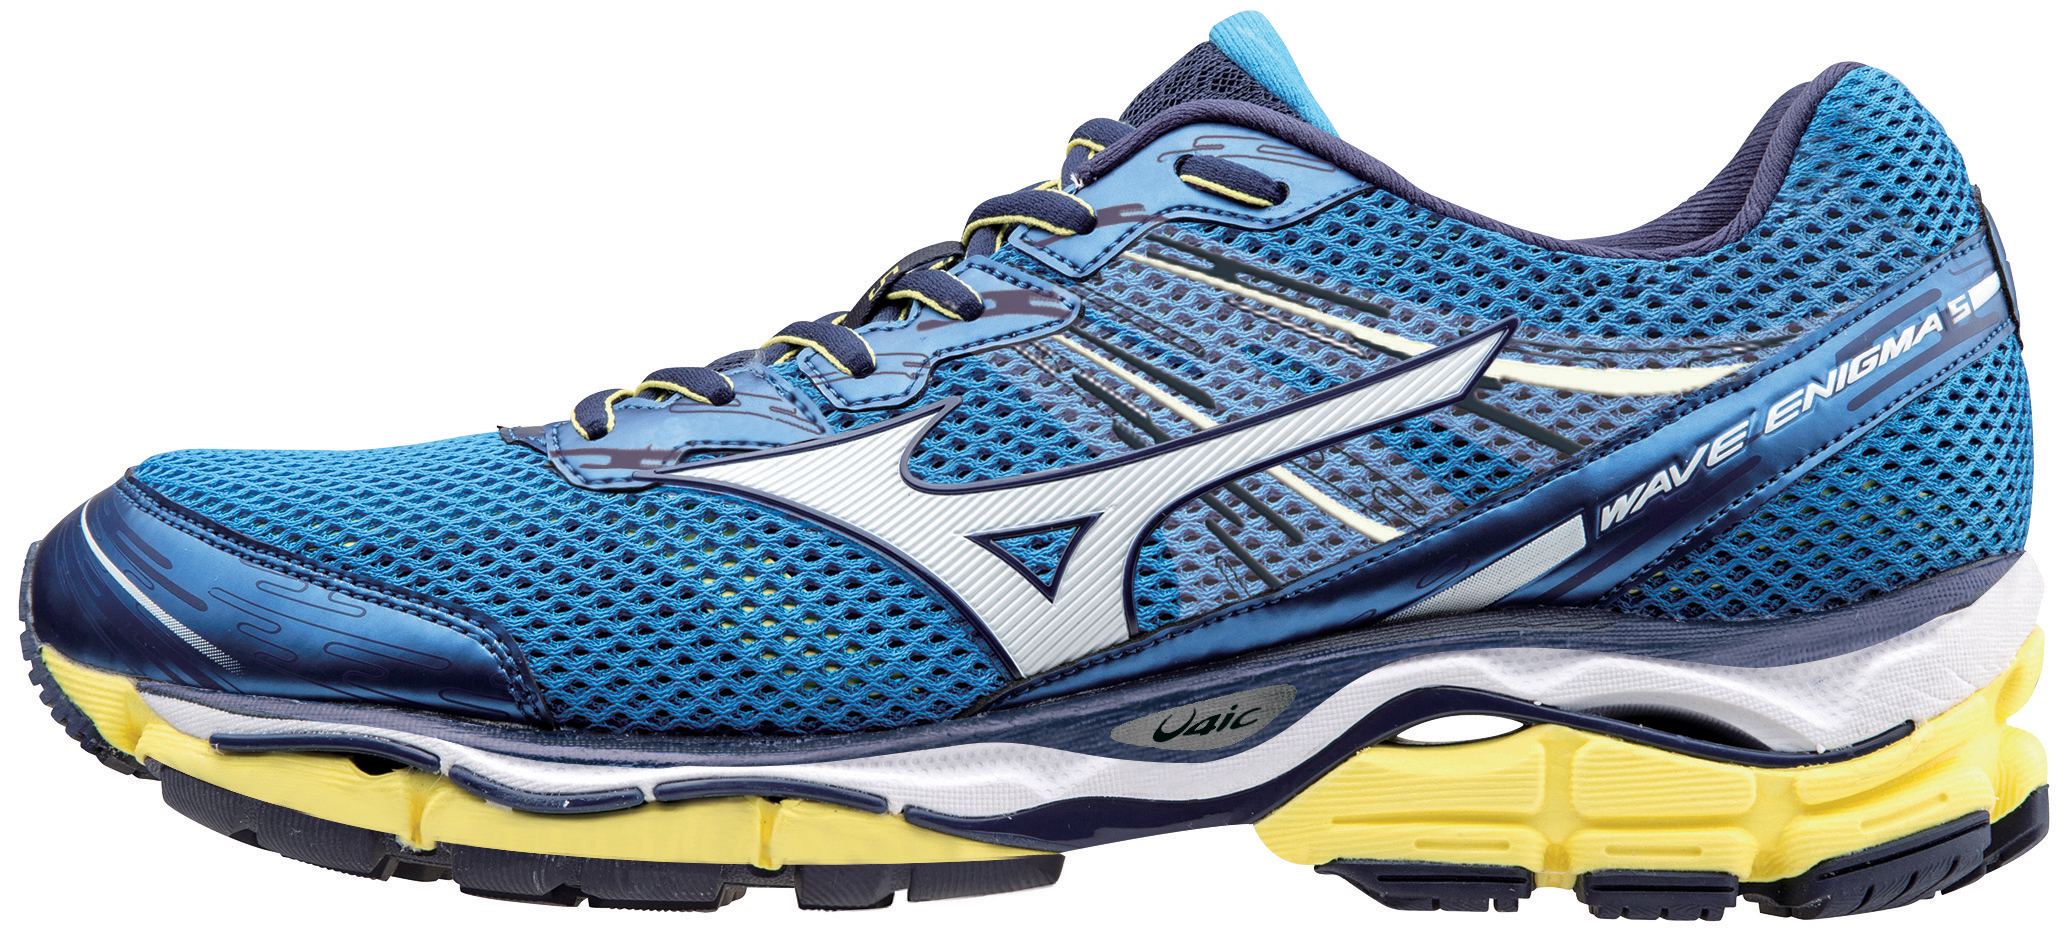 Chaussures de running | Mizuno | Wave Enigma 5 Shoes (AW15